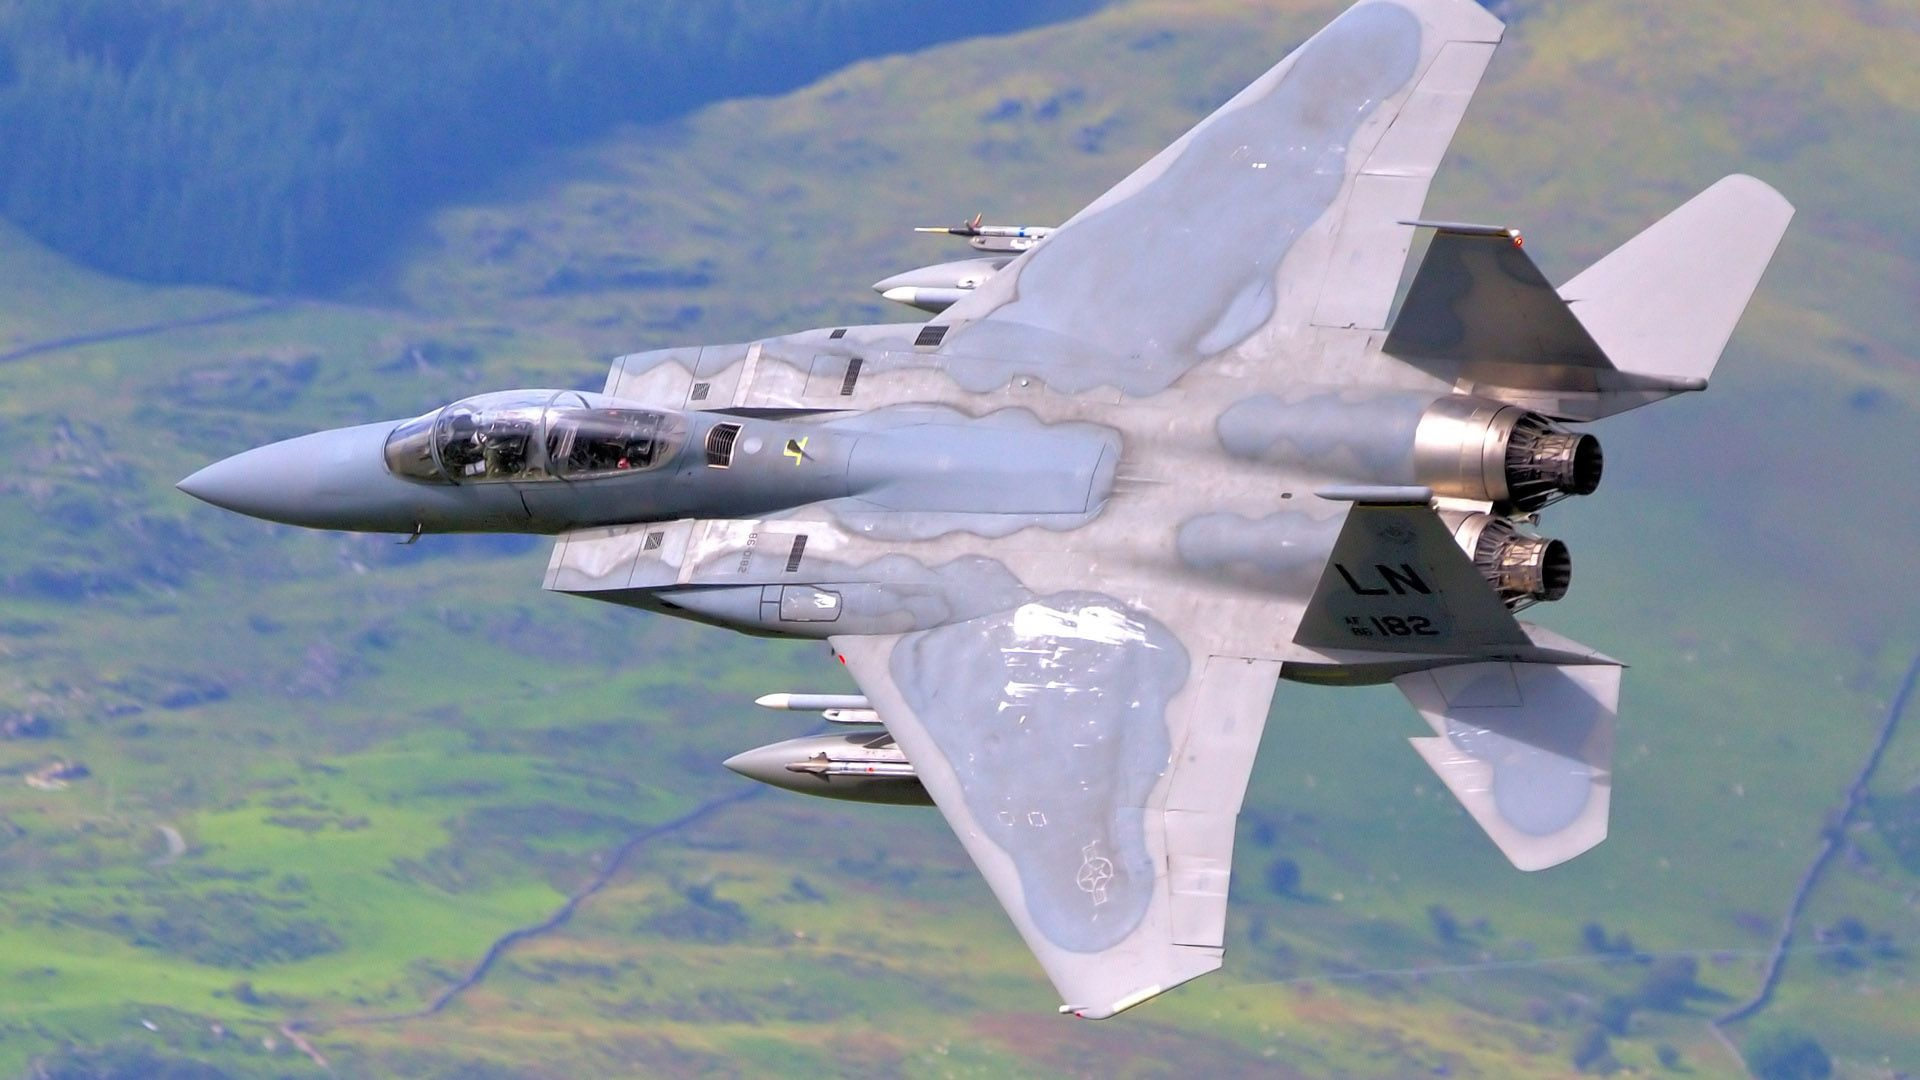 McDonnell Douglas F-15 Eagle | Mcdonnell Douglas F 15 Eagle Aircraft Desktop Wallpapers and ...